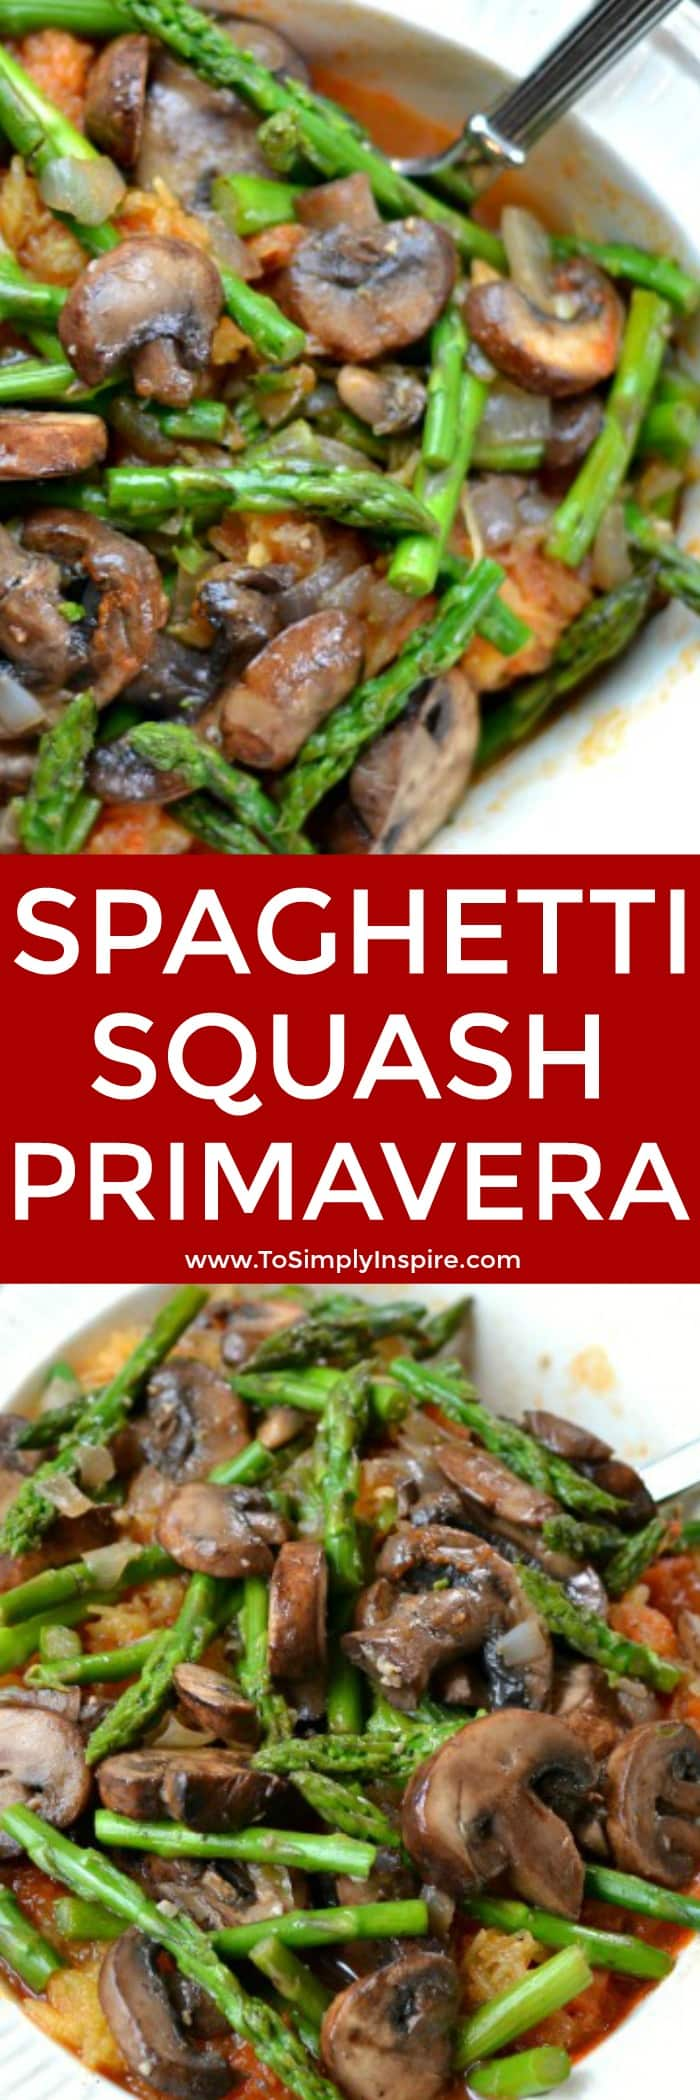 This Spaghetti Squash Primavera is loaded with your favorite fresh vegetables and marinara sauce combined for a delectable low carb version of a favorite Italian meal. Easy, cheap and quick to make.